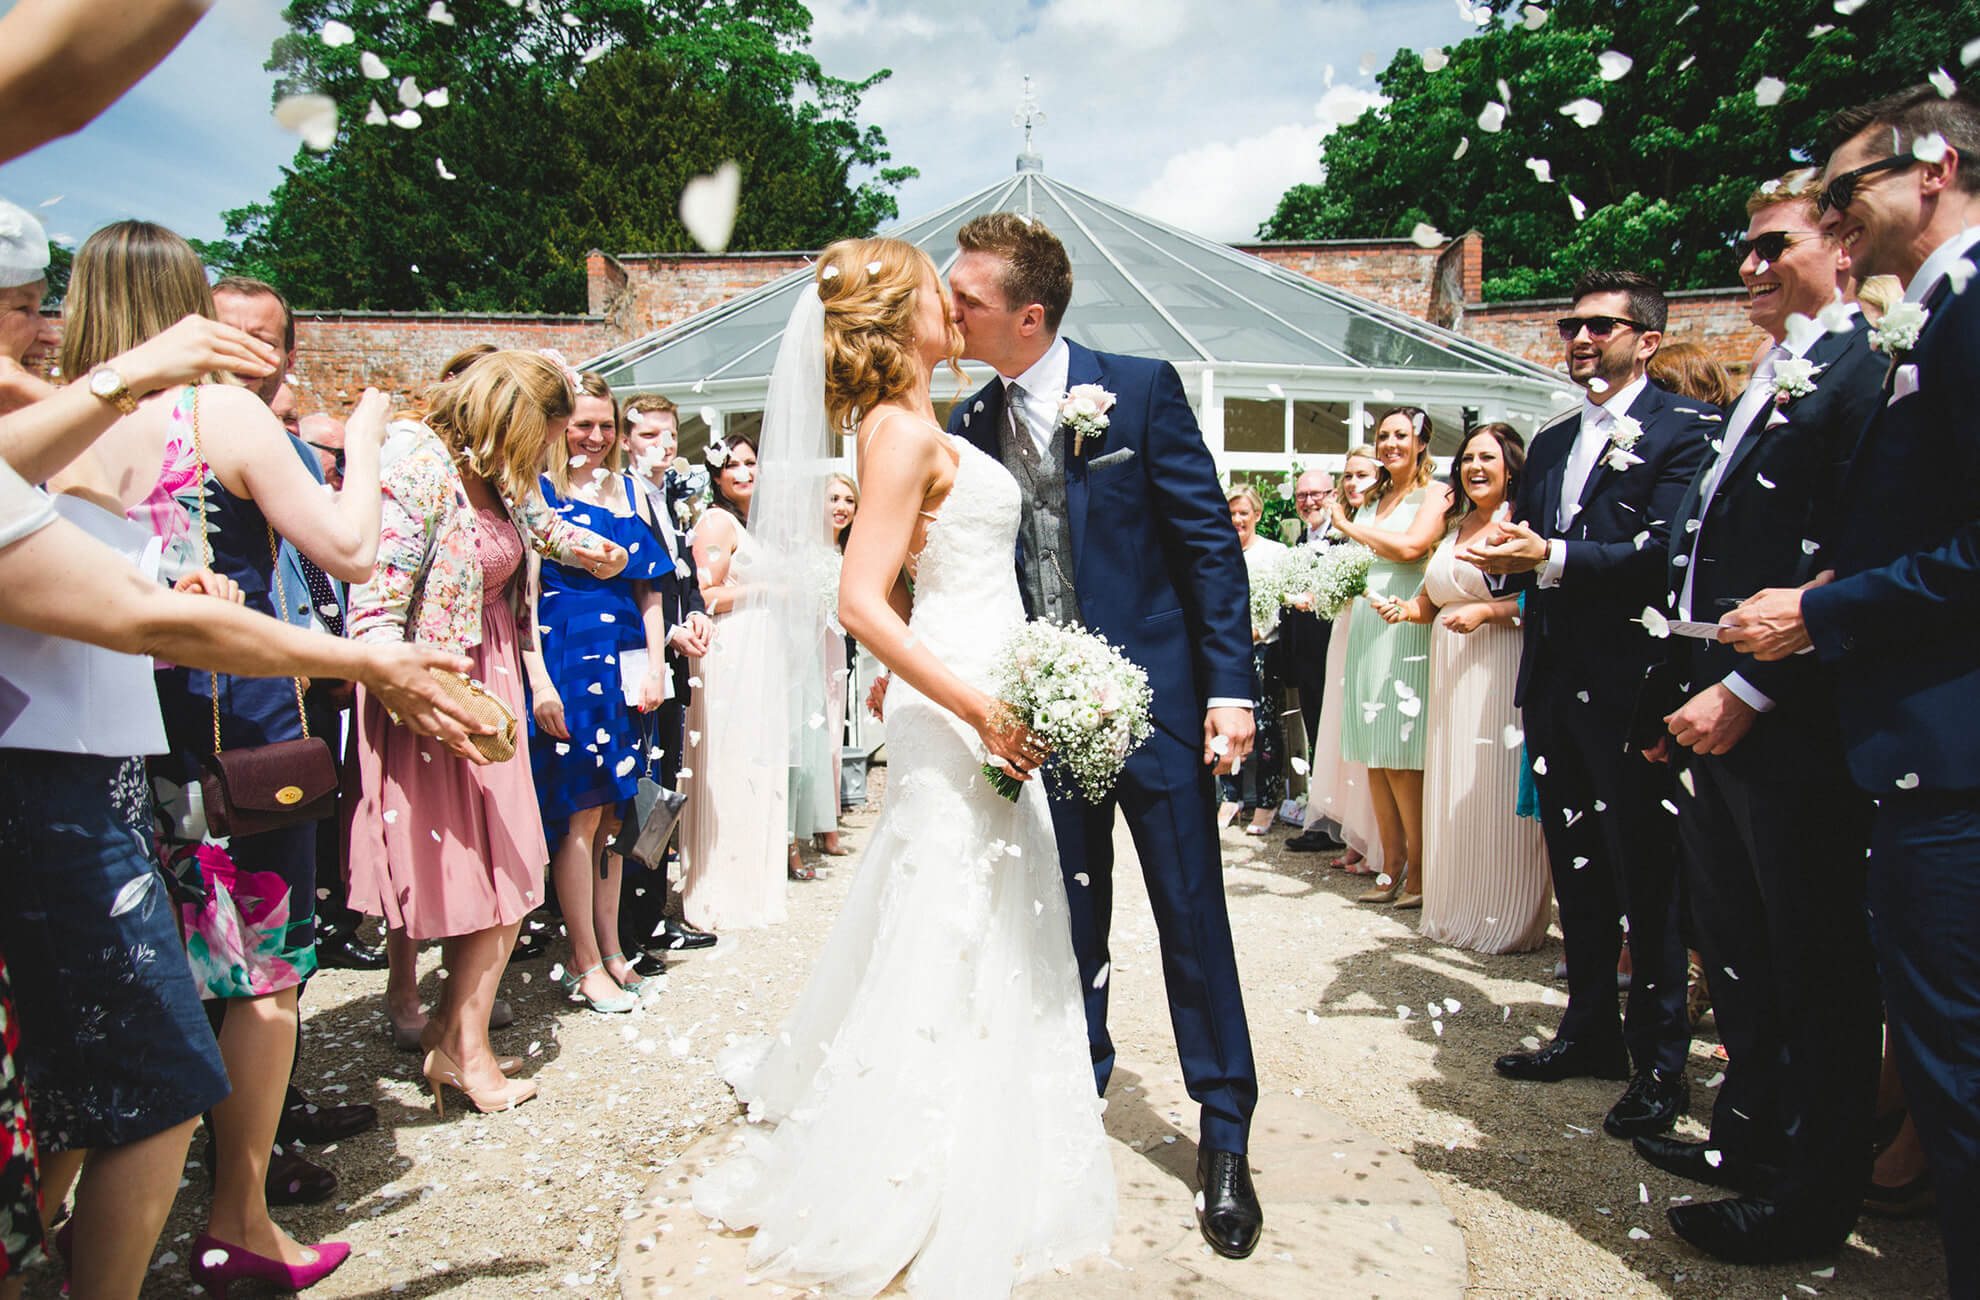 A bride and groom kiss as they enjoy a confetti moment surrounded by wedding guests at Combermere Abbey